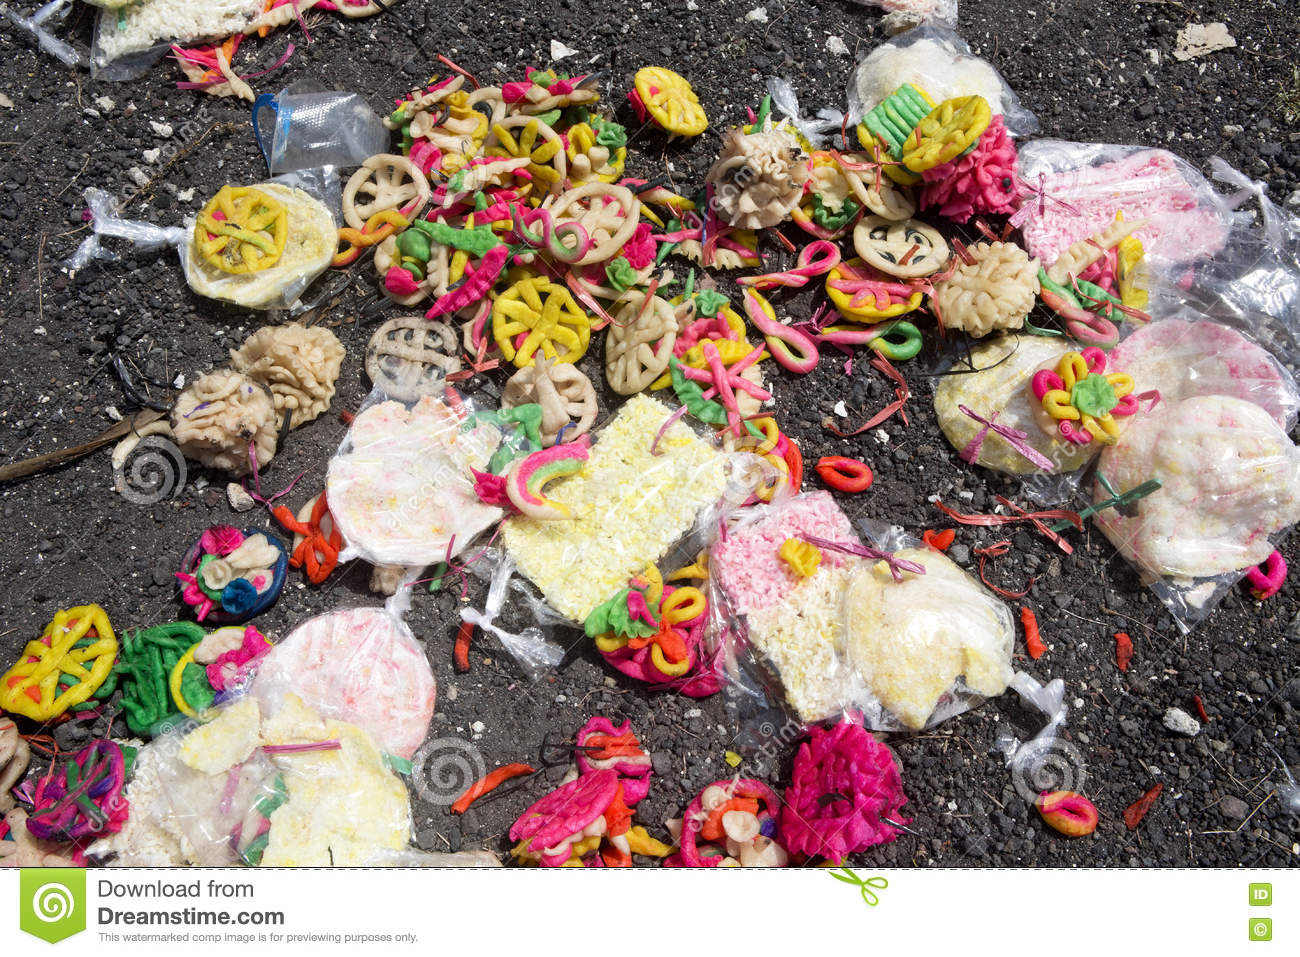 Remnants Of Donations After Hindu Funeral Nusa Penida Indonesia